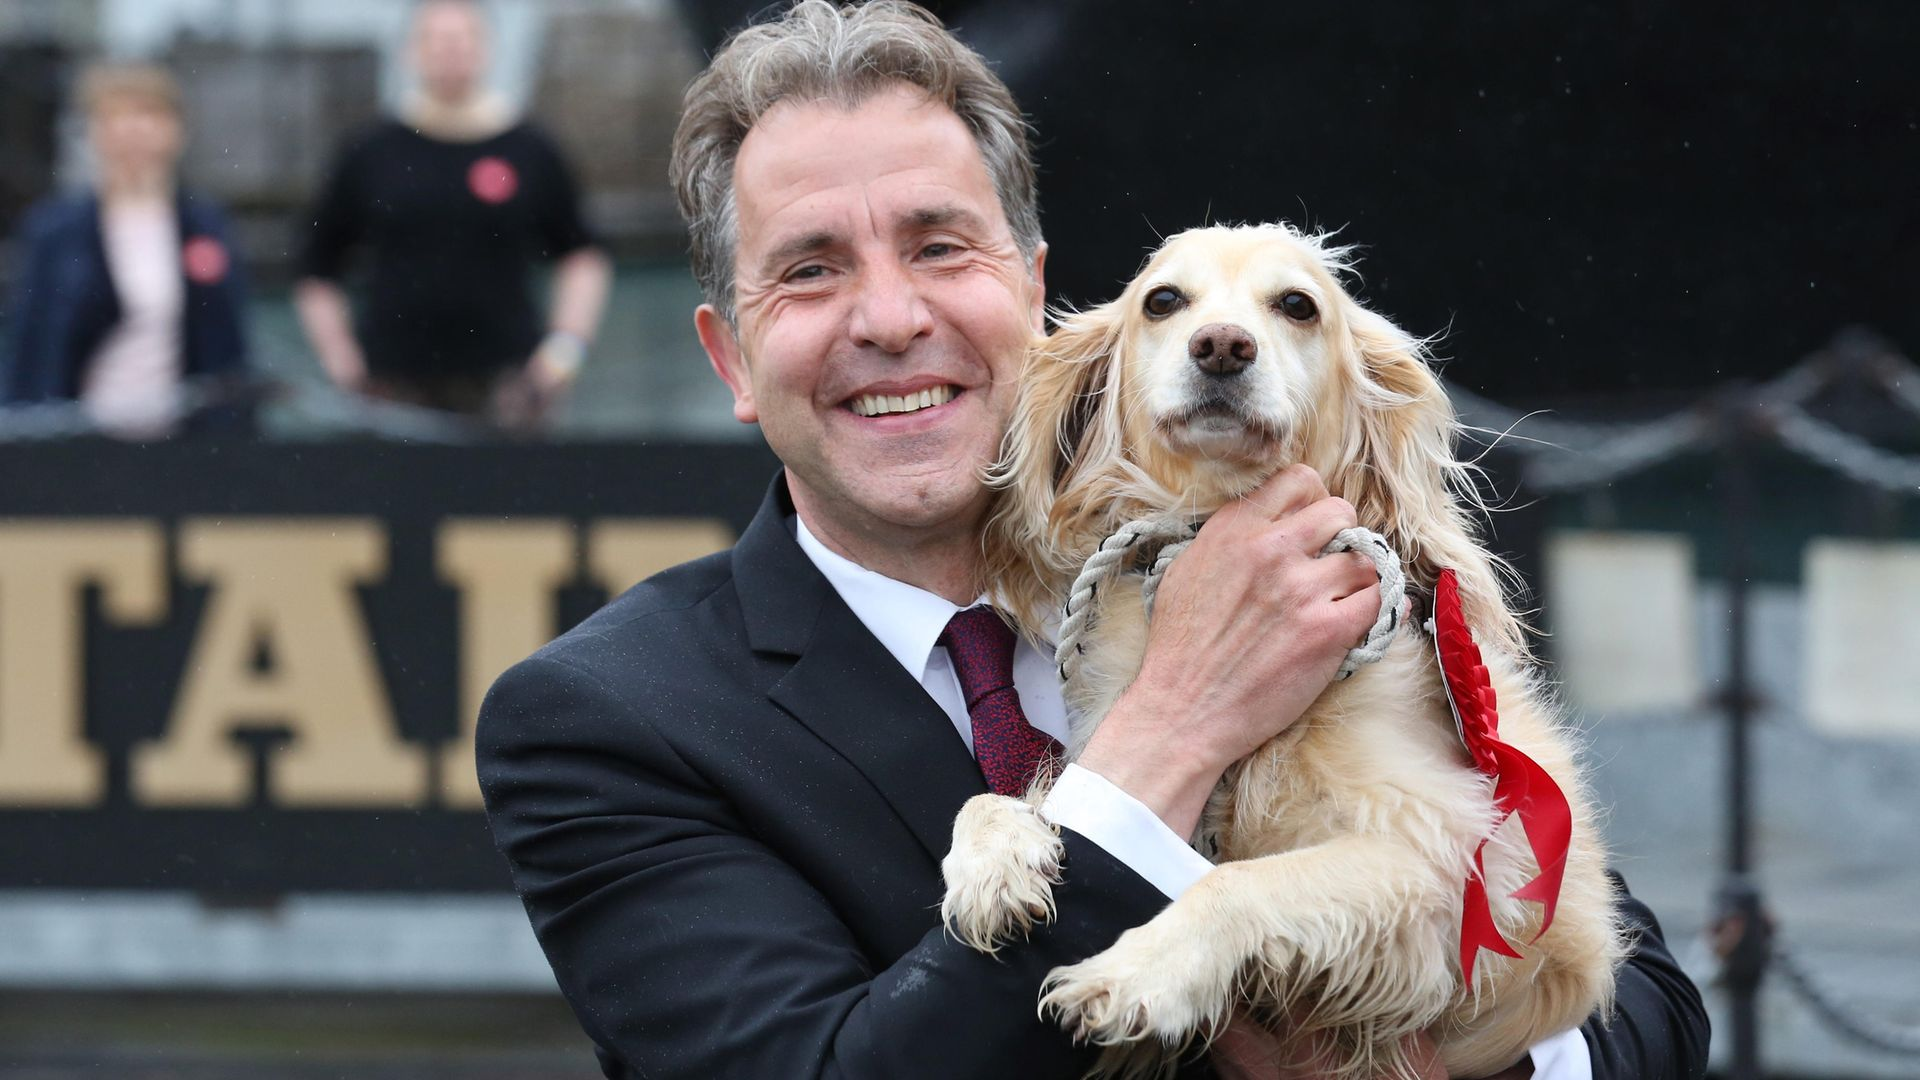 Labour's Dan Norris celebrating with his dog Angel after being elected West of England mayor - Credit: PA